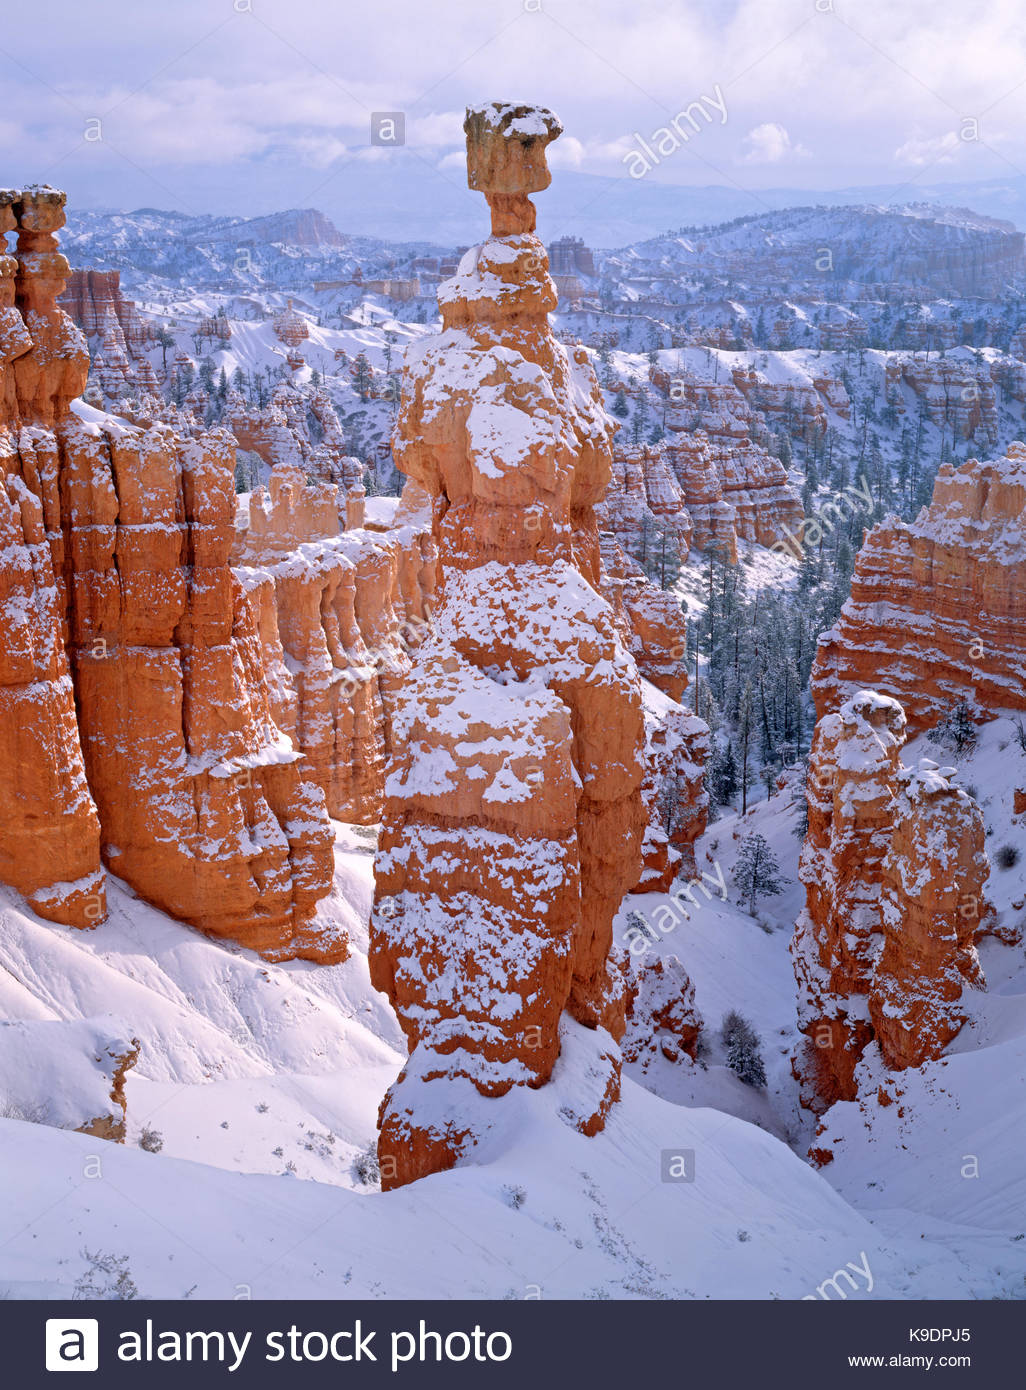 Thor's Hammer after Snowstorm, Bryce Canyon National Park, Utah - Stock Image